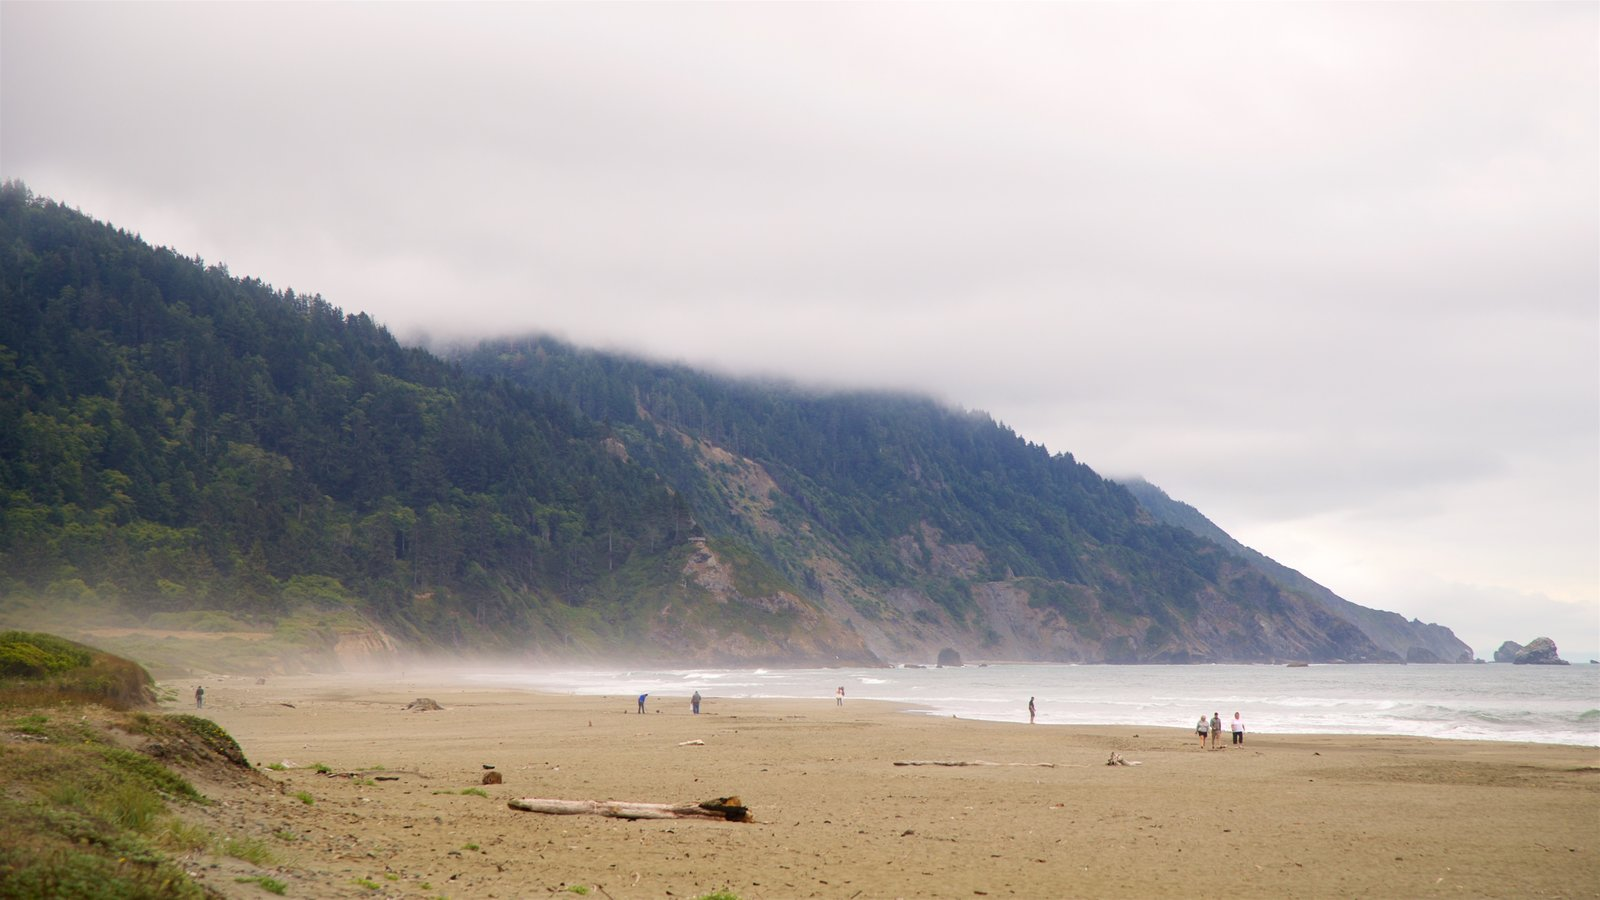 Redwood National and State Parks which includes rocky coastline, mist or fog and a sandy beach